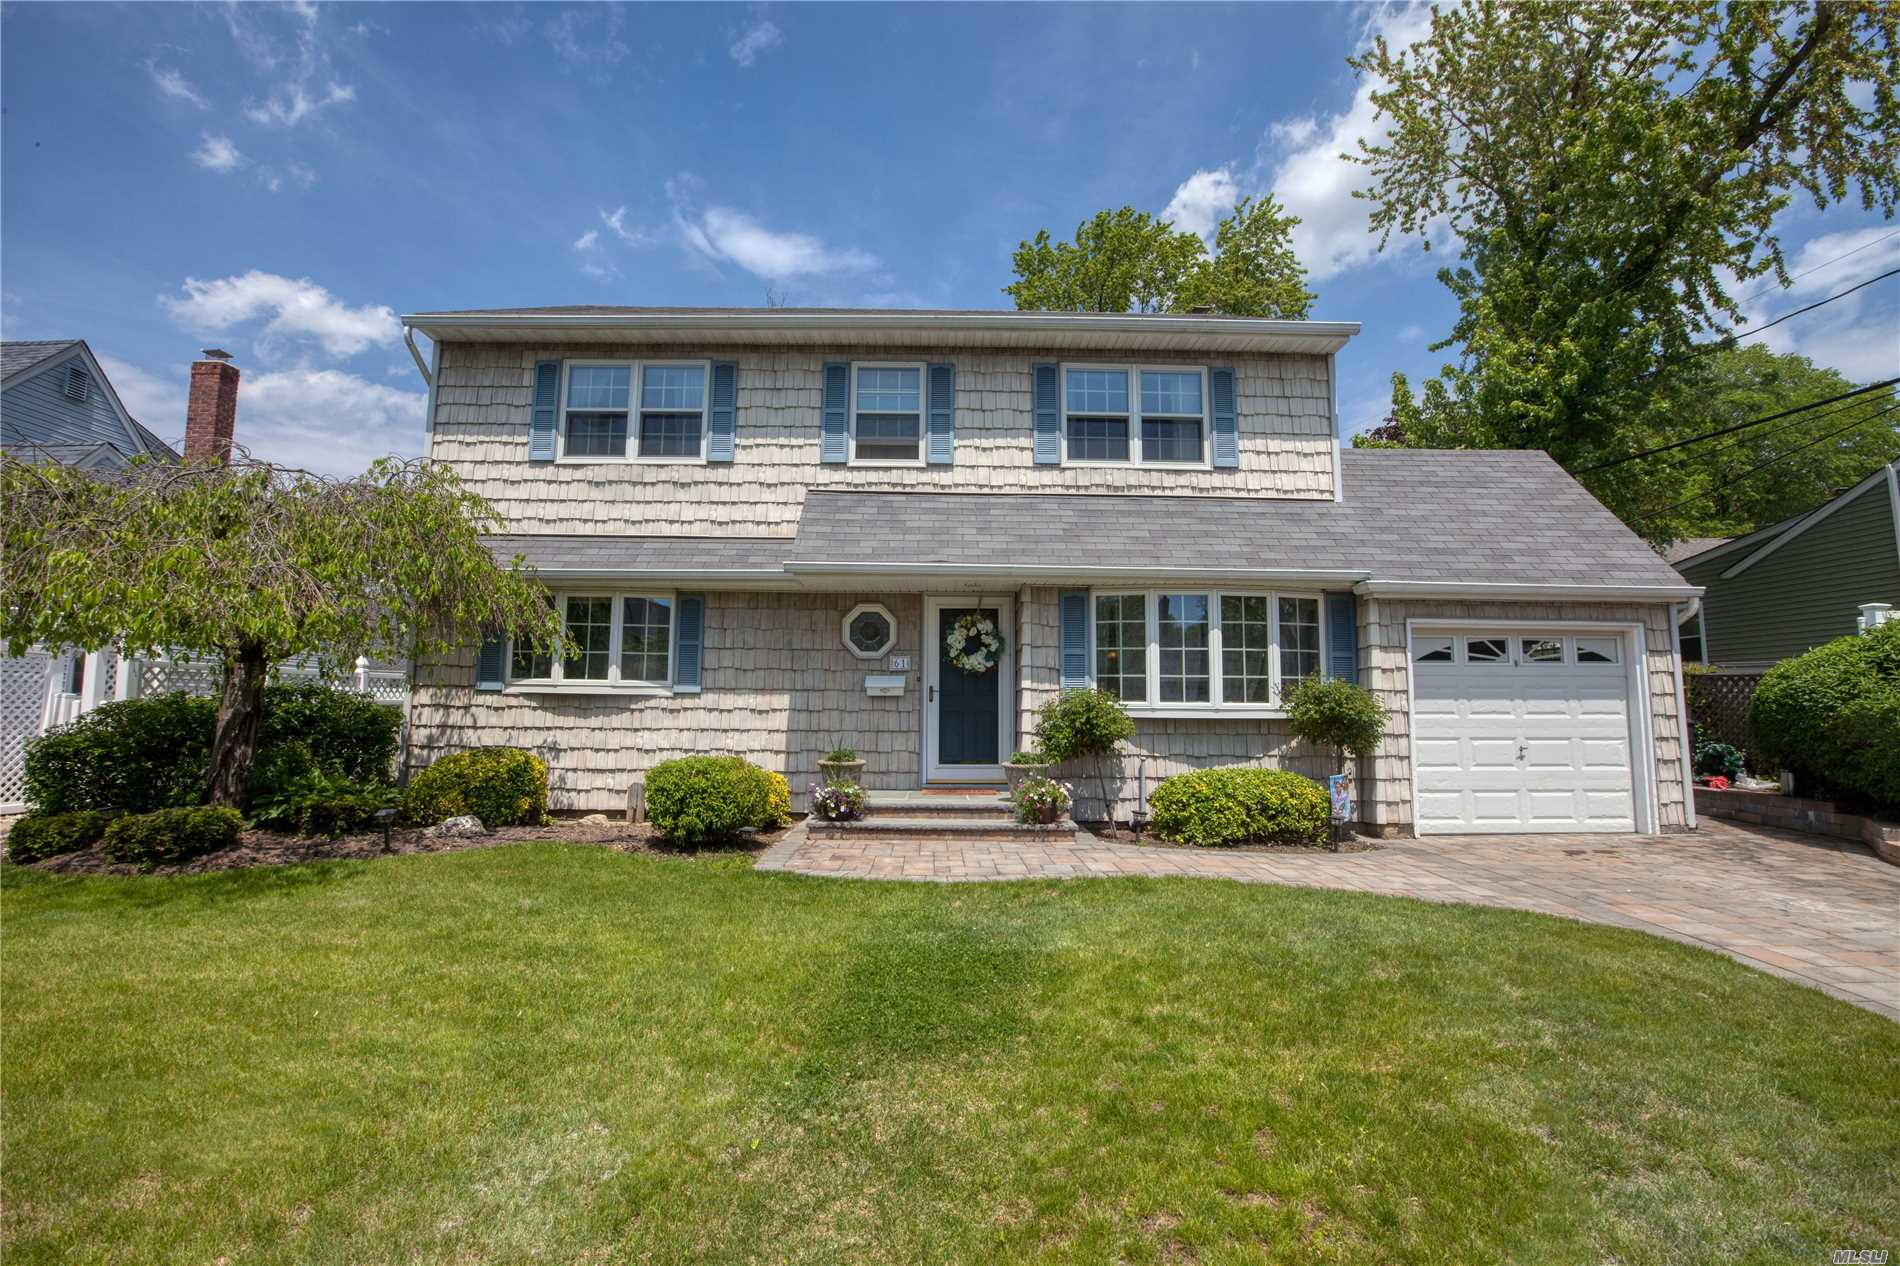 Mint, immaculate large Colonial situated in Lenox Hills, Inc. Village, great curb appeal w/vinyl sided ext., open floor plan, 5 BRS, 2.5 Baths, all large rooms, large updated EIK w/oak cabinets, Main Level Family Rm or 5th BR w/built-ins, large MBR Suite w/2 WIC'S, full, fin Family Rm Basement w/1/2 Bath, h/w flrs, all Andersen windows, newly painted int., 150 amp elec., o/s privately fenced backyard, close to town, shopping & r/r, close to Bethpage State Park & Golf Course. Tax Grievance Filed